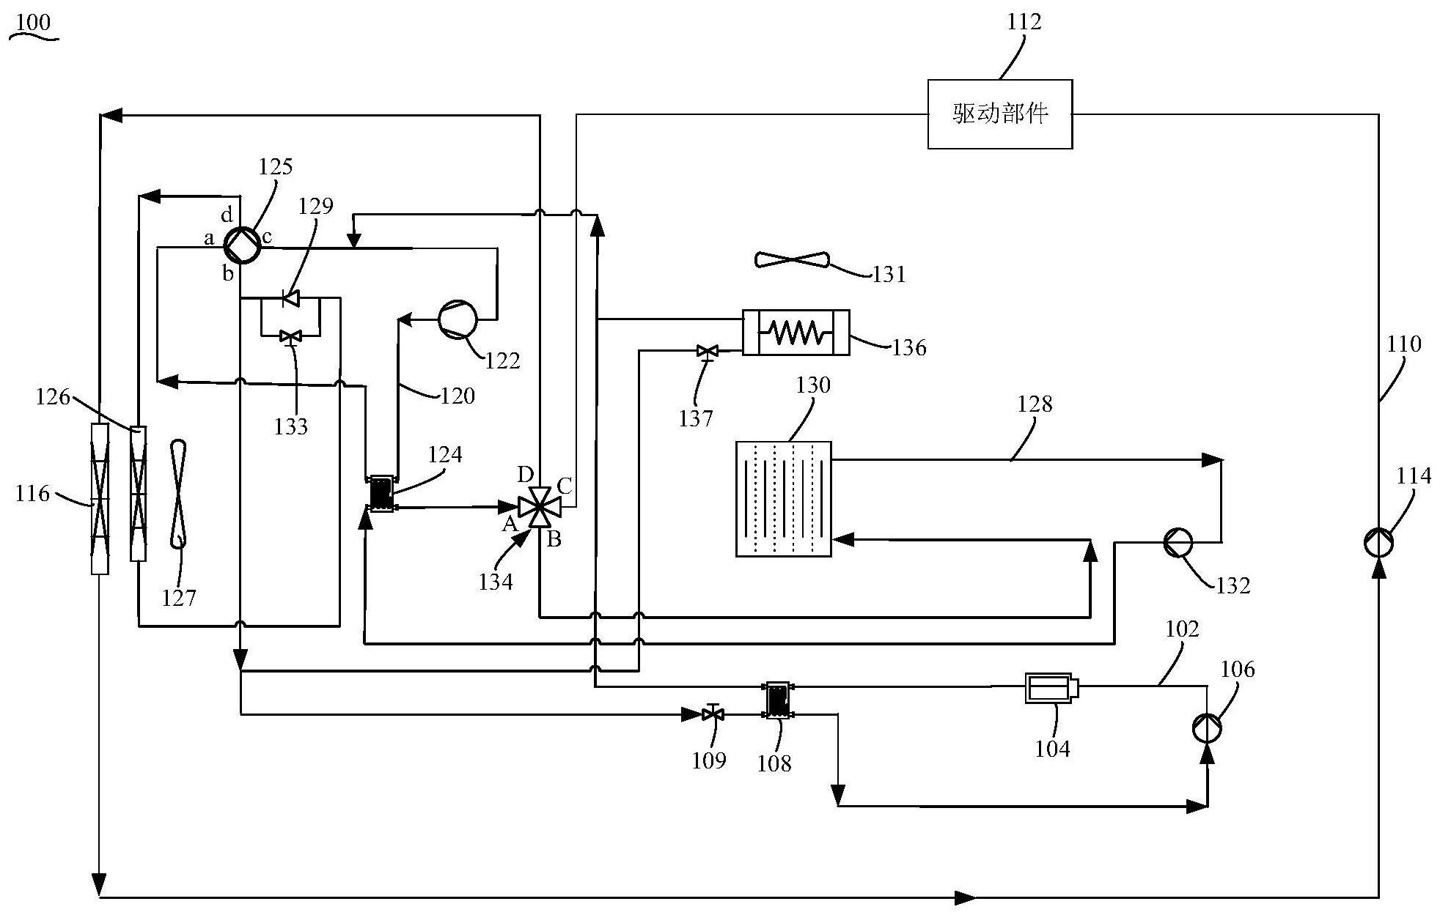 XPeng files patent for thermal management system that can improve battery heat dissipation-CnEVPost